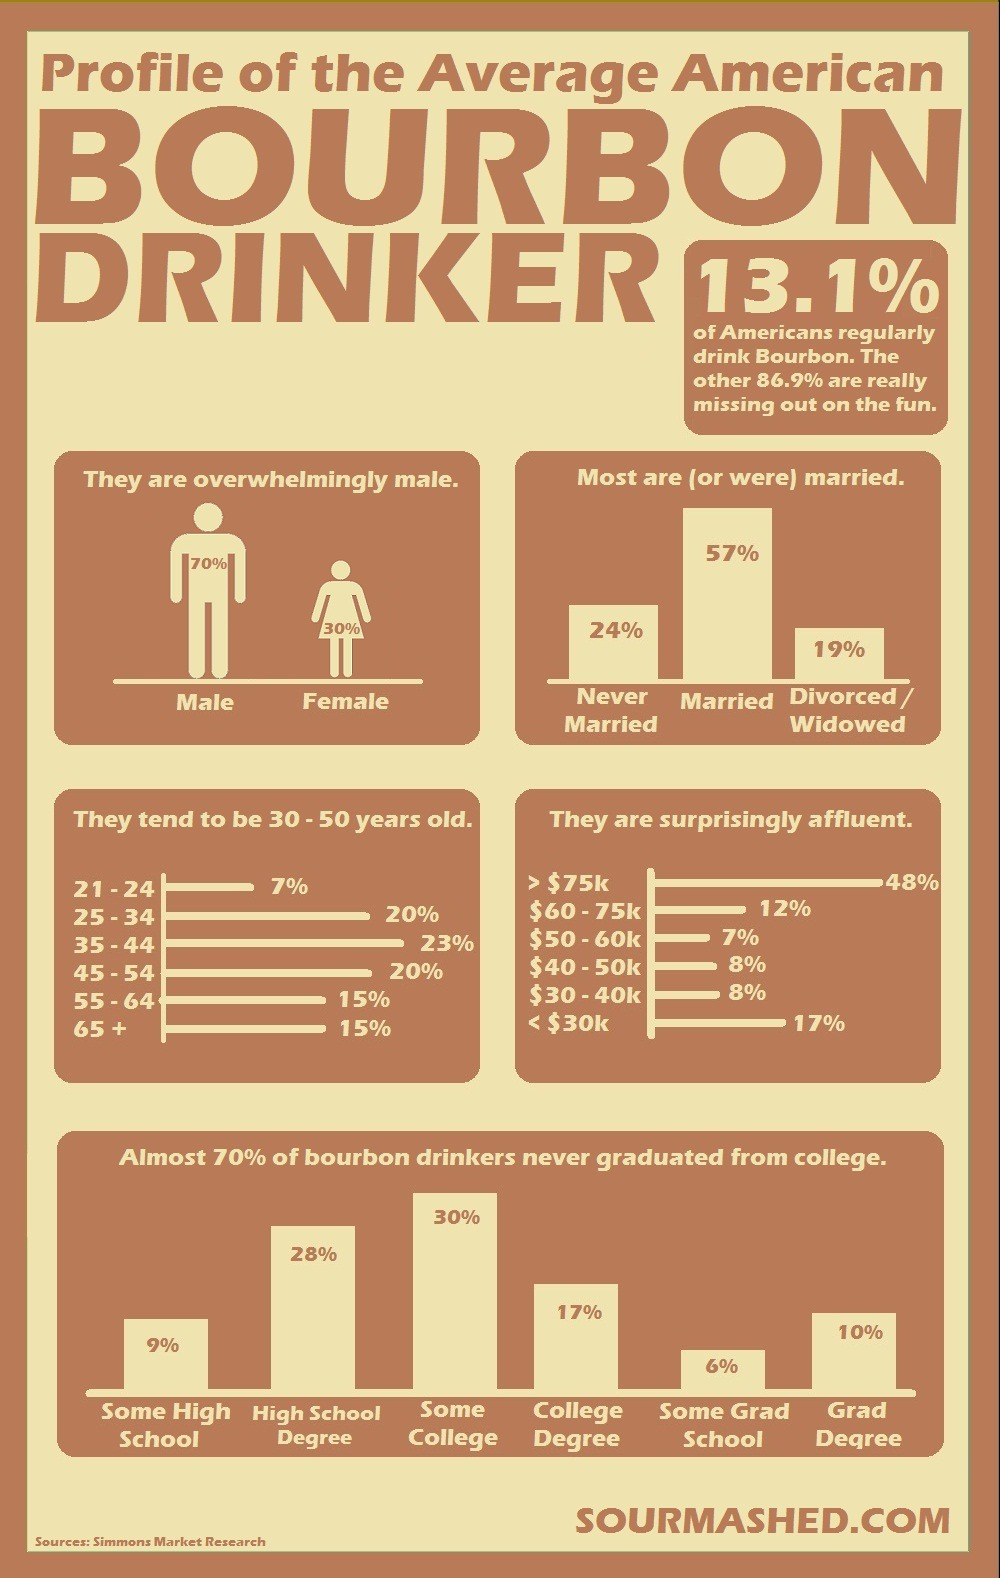 Profile of the Average American Bourbon Drinker via Frank Pratt I am a proud American bourbon drinker.